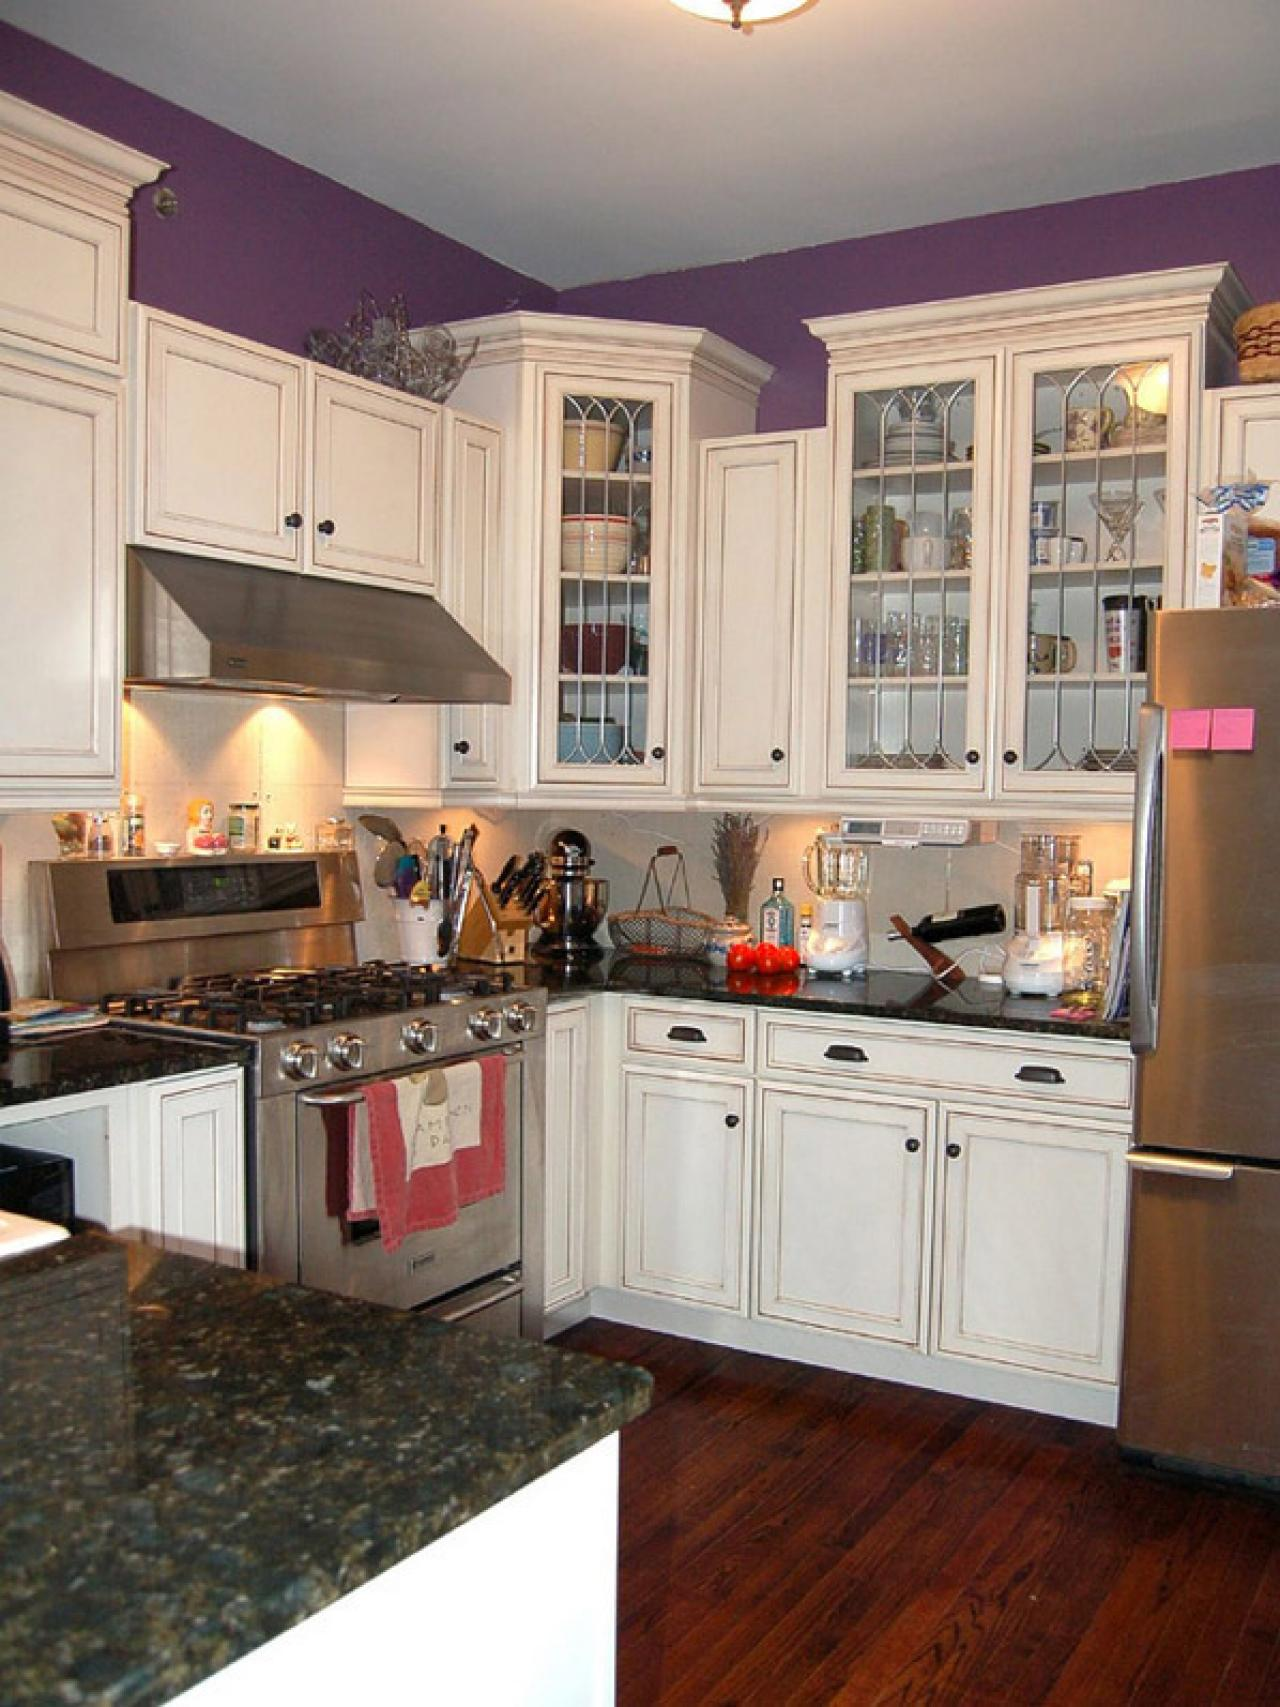 small kitchen design ideas small kitchen design ideas i - Images Of Small Kitchen Decorating Ideas